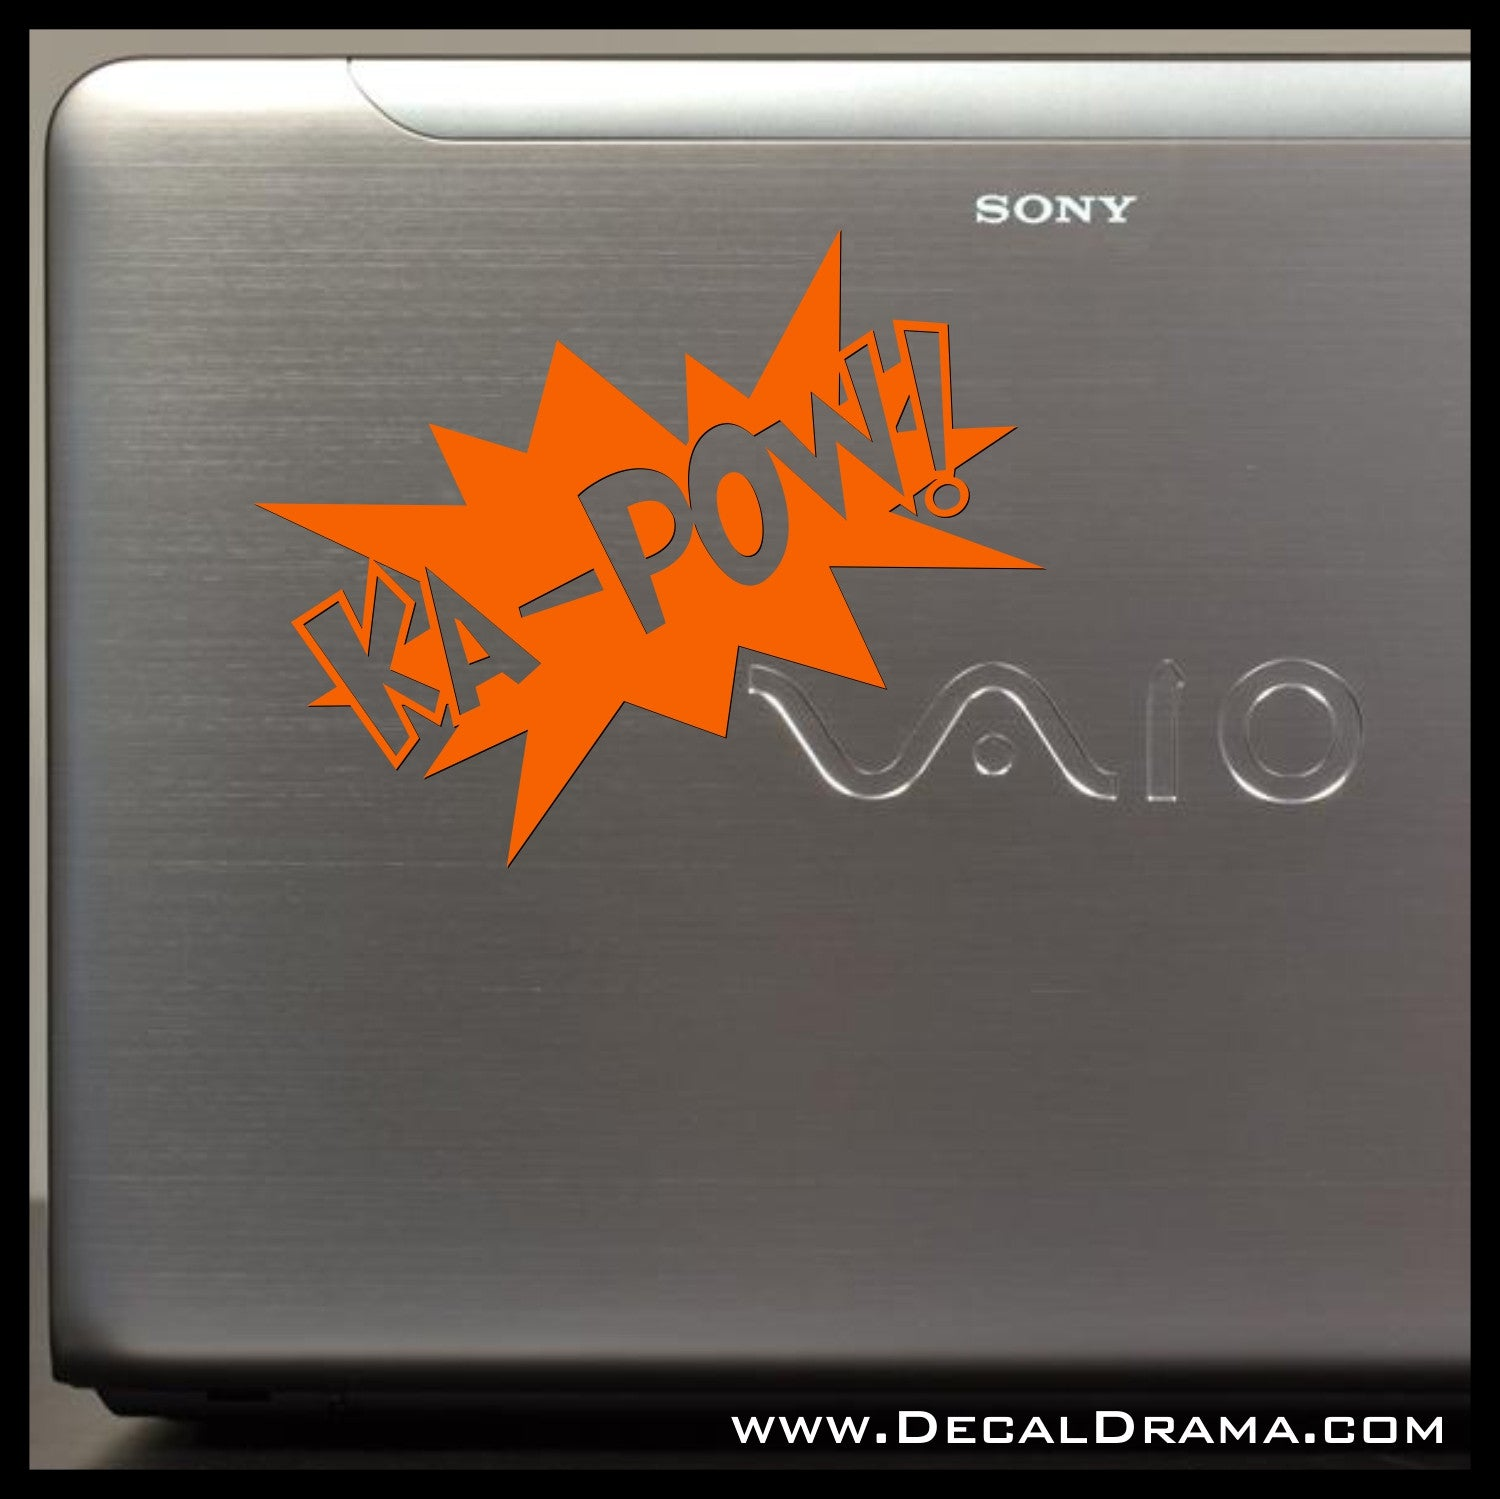 KA-POW! Comic Book Exclamation Vinyl Car/Laptop Decal